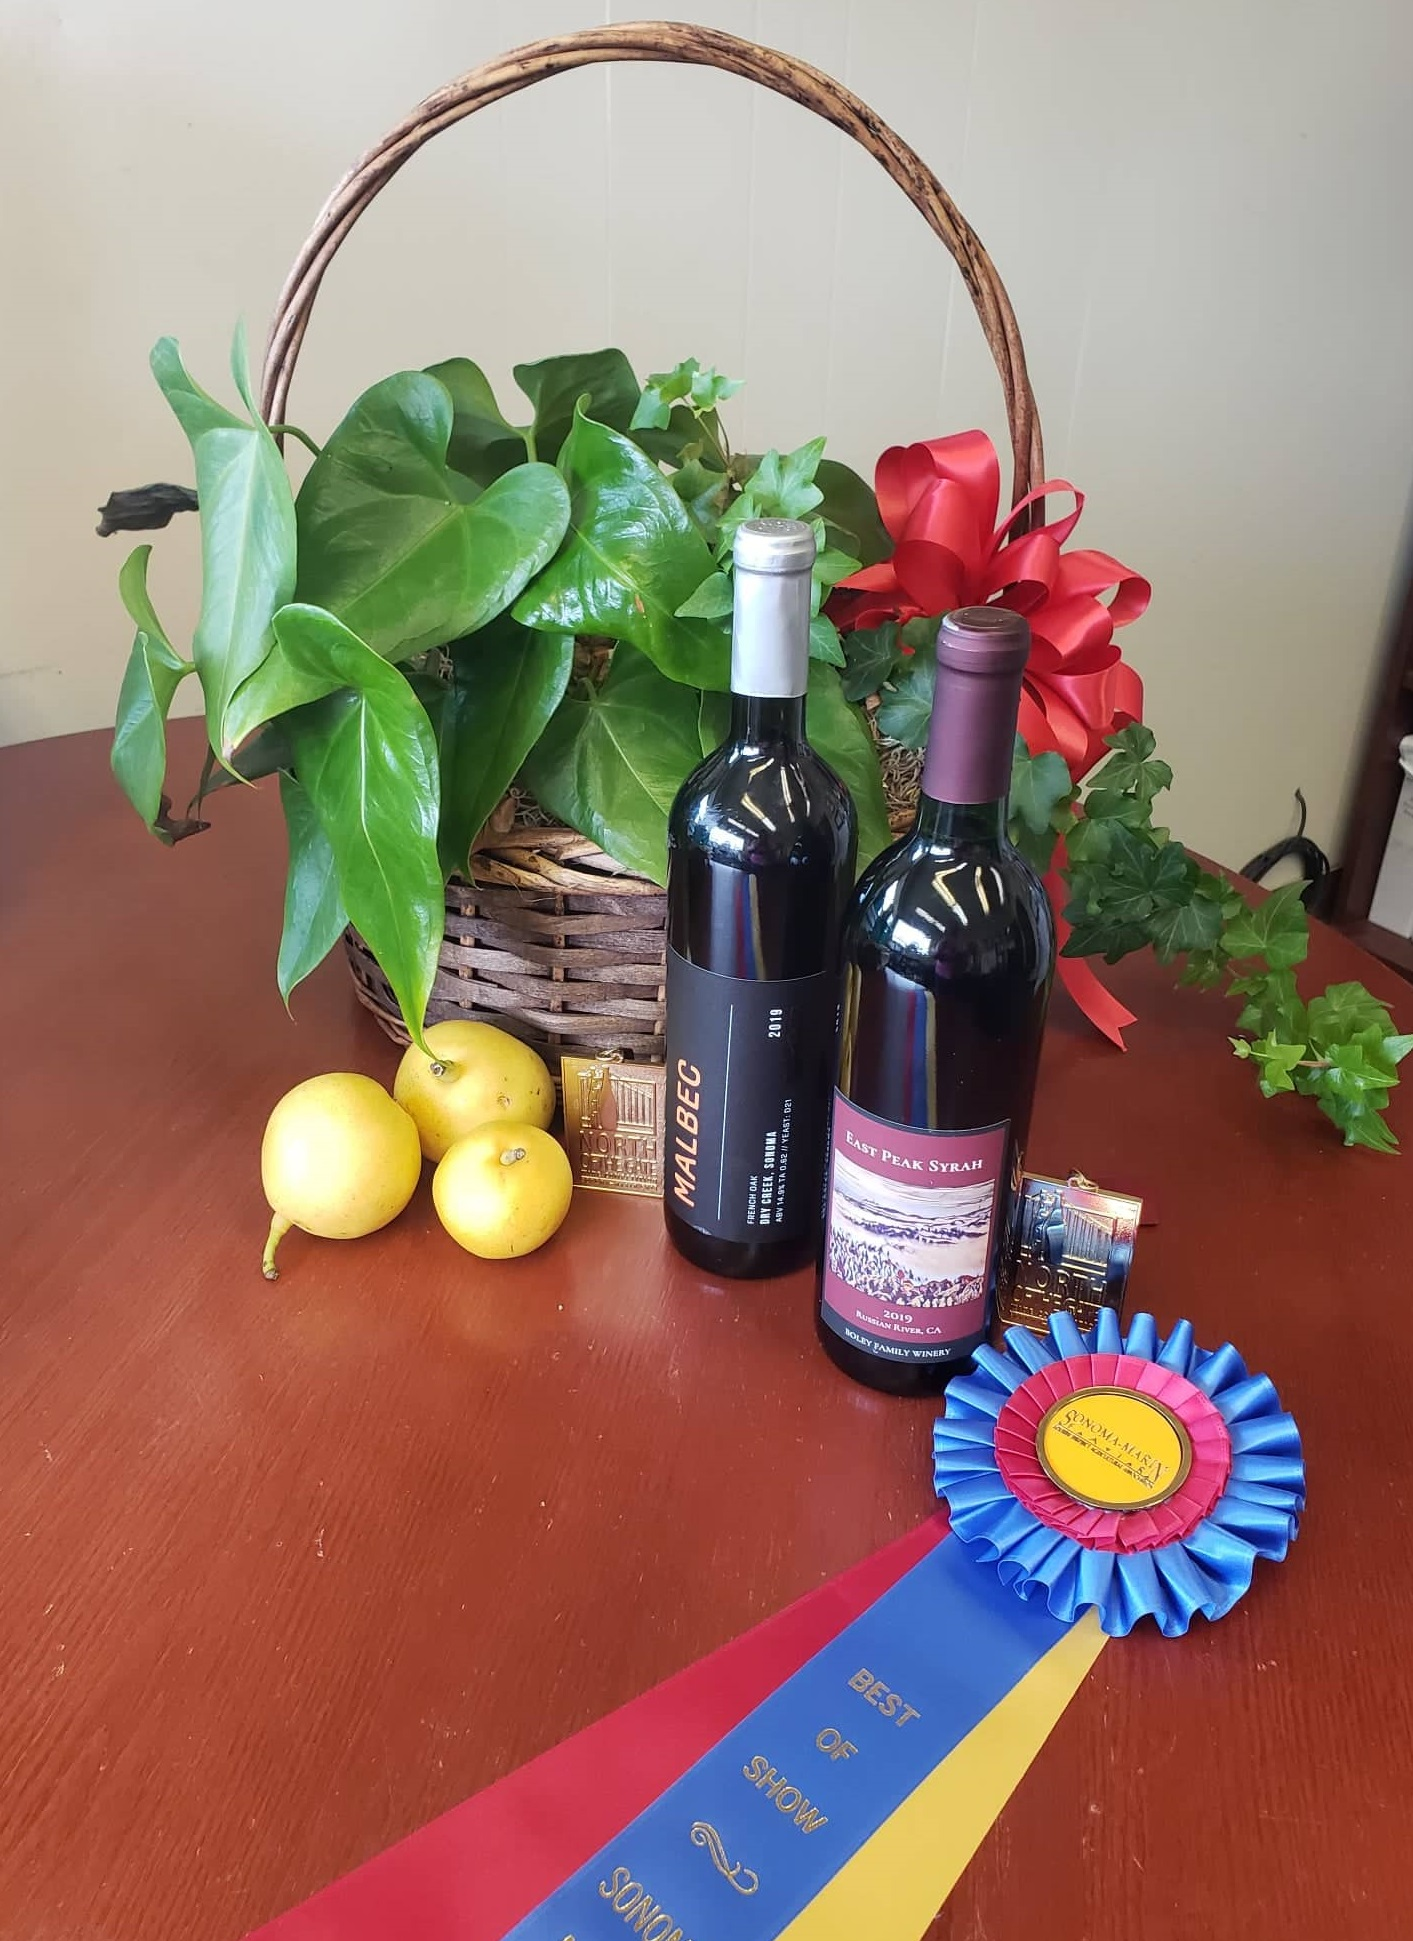 Best of Class and Best of Show, 2021 Amateur Wine Competition